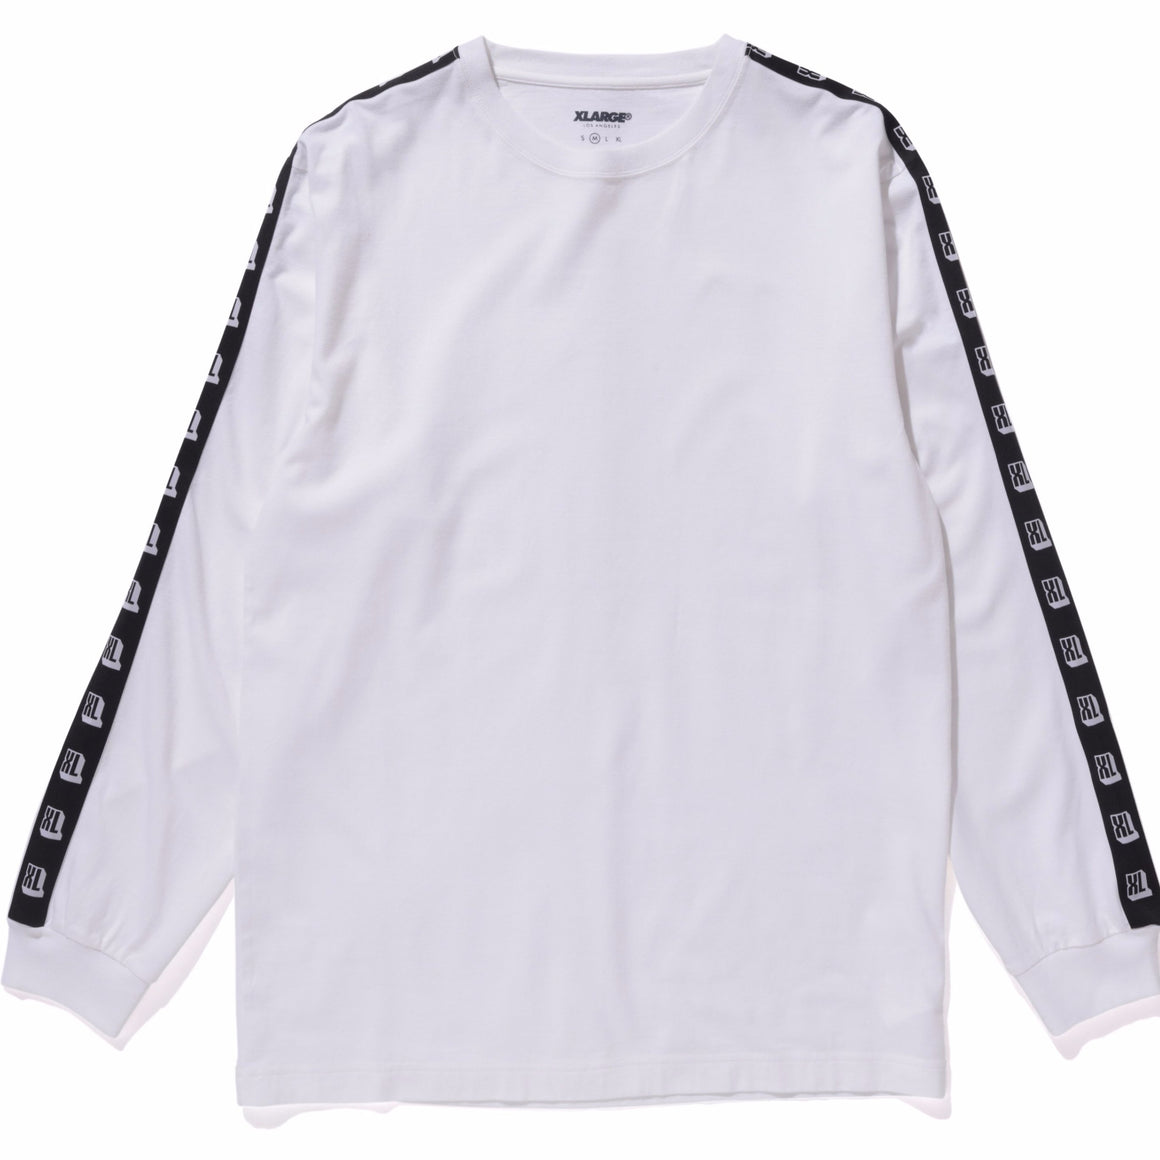 TAPED LS TEE - X-Large Clothing